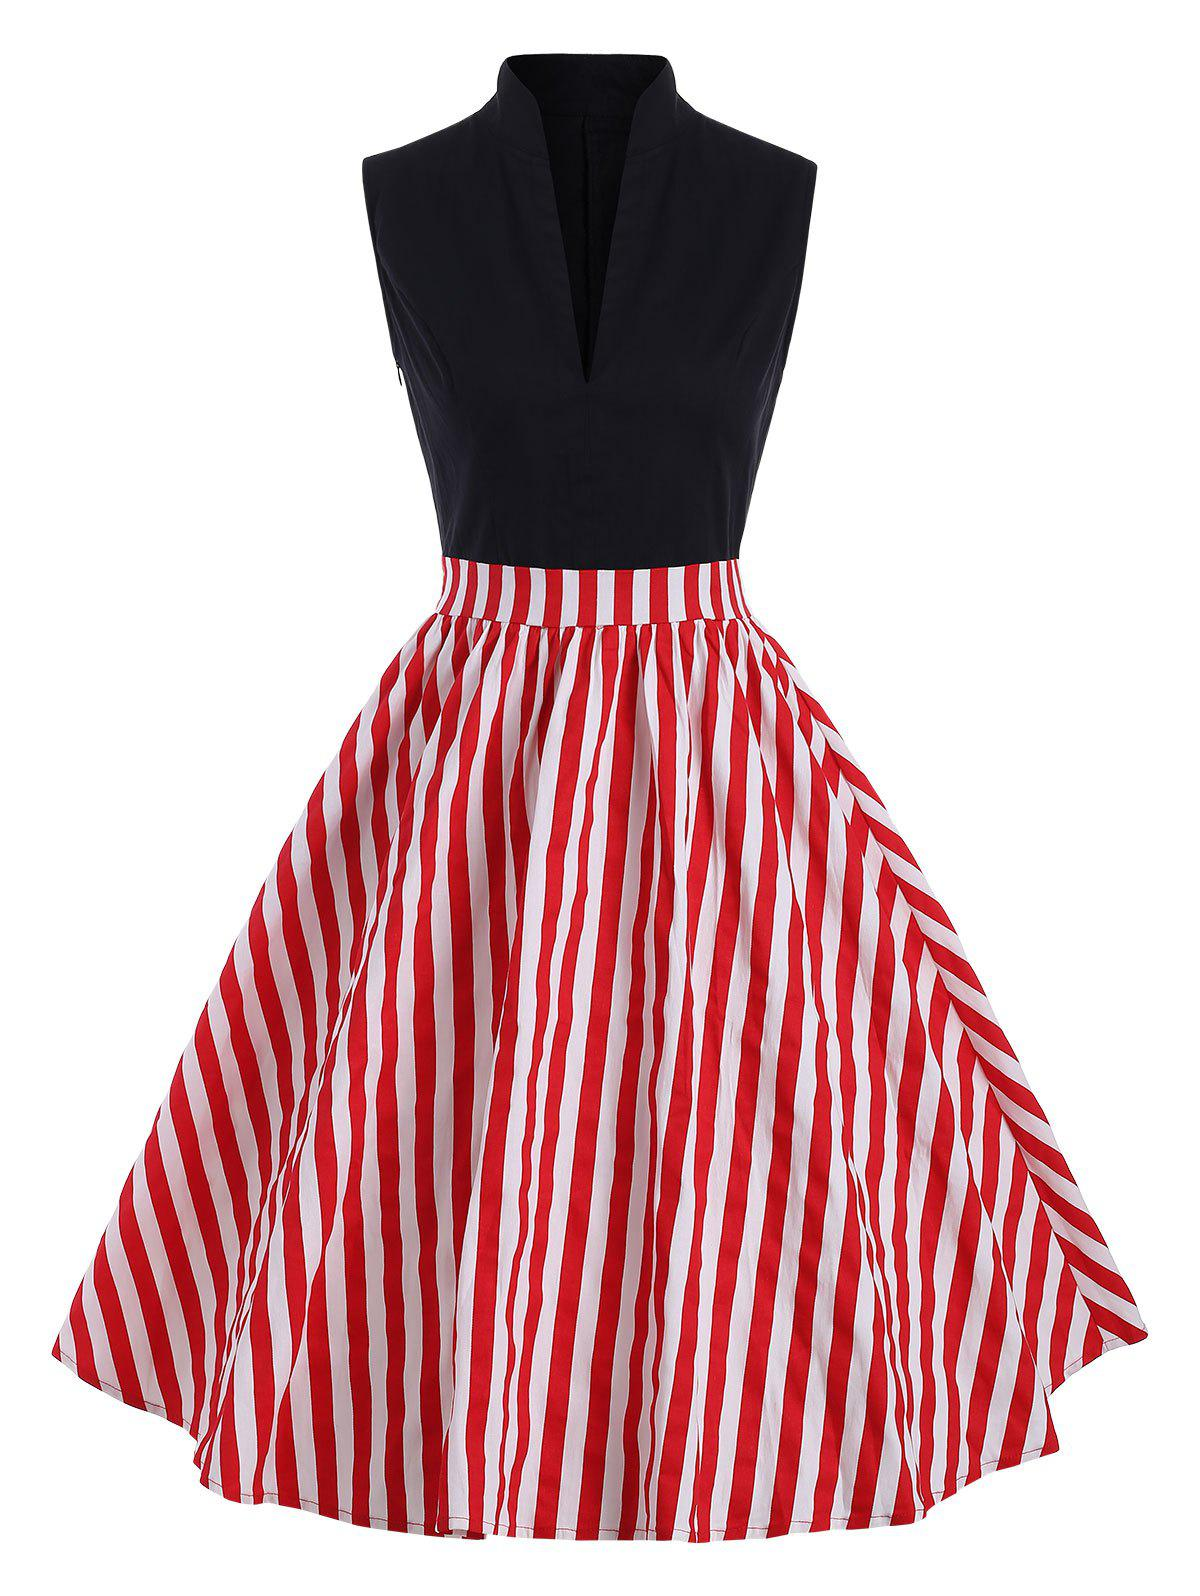 Discount Vintage Stand Collar Striped Dress